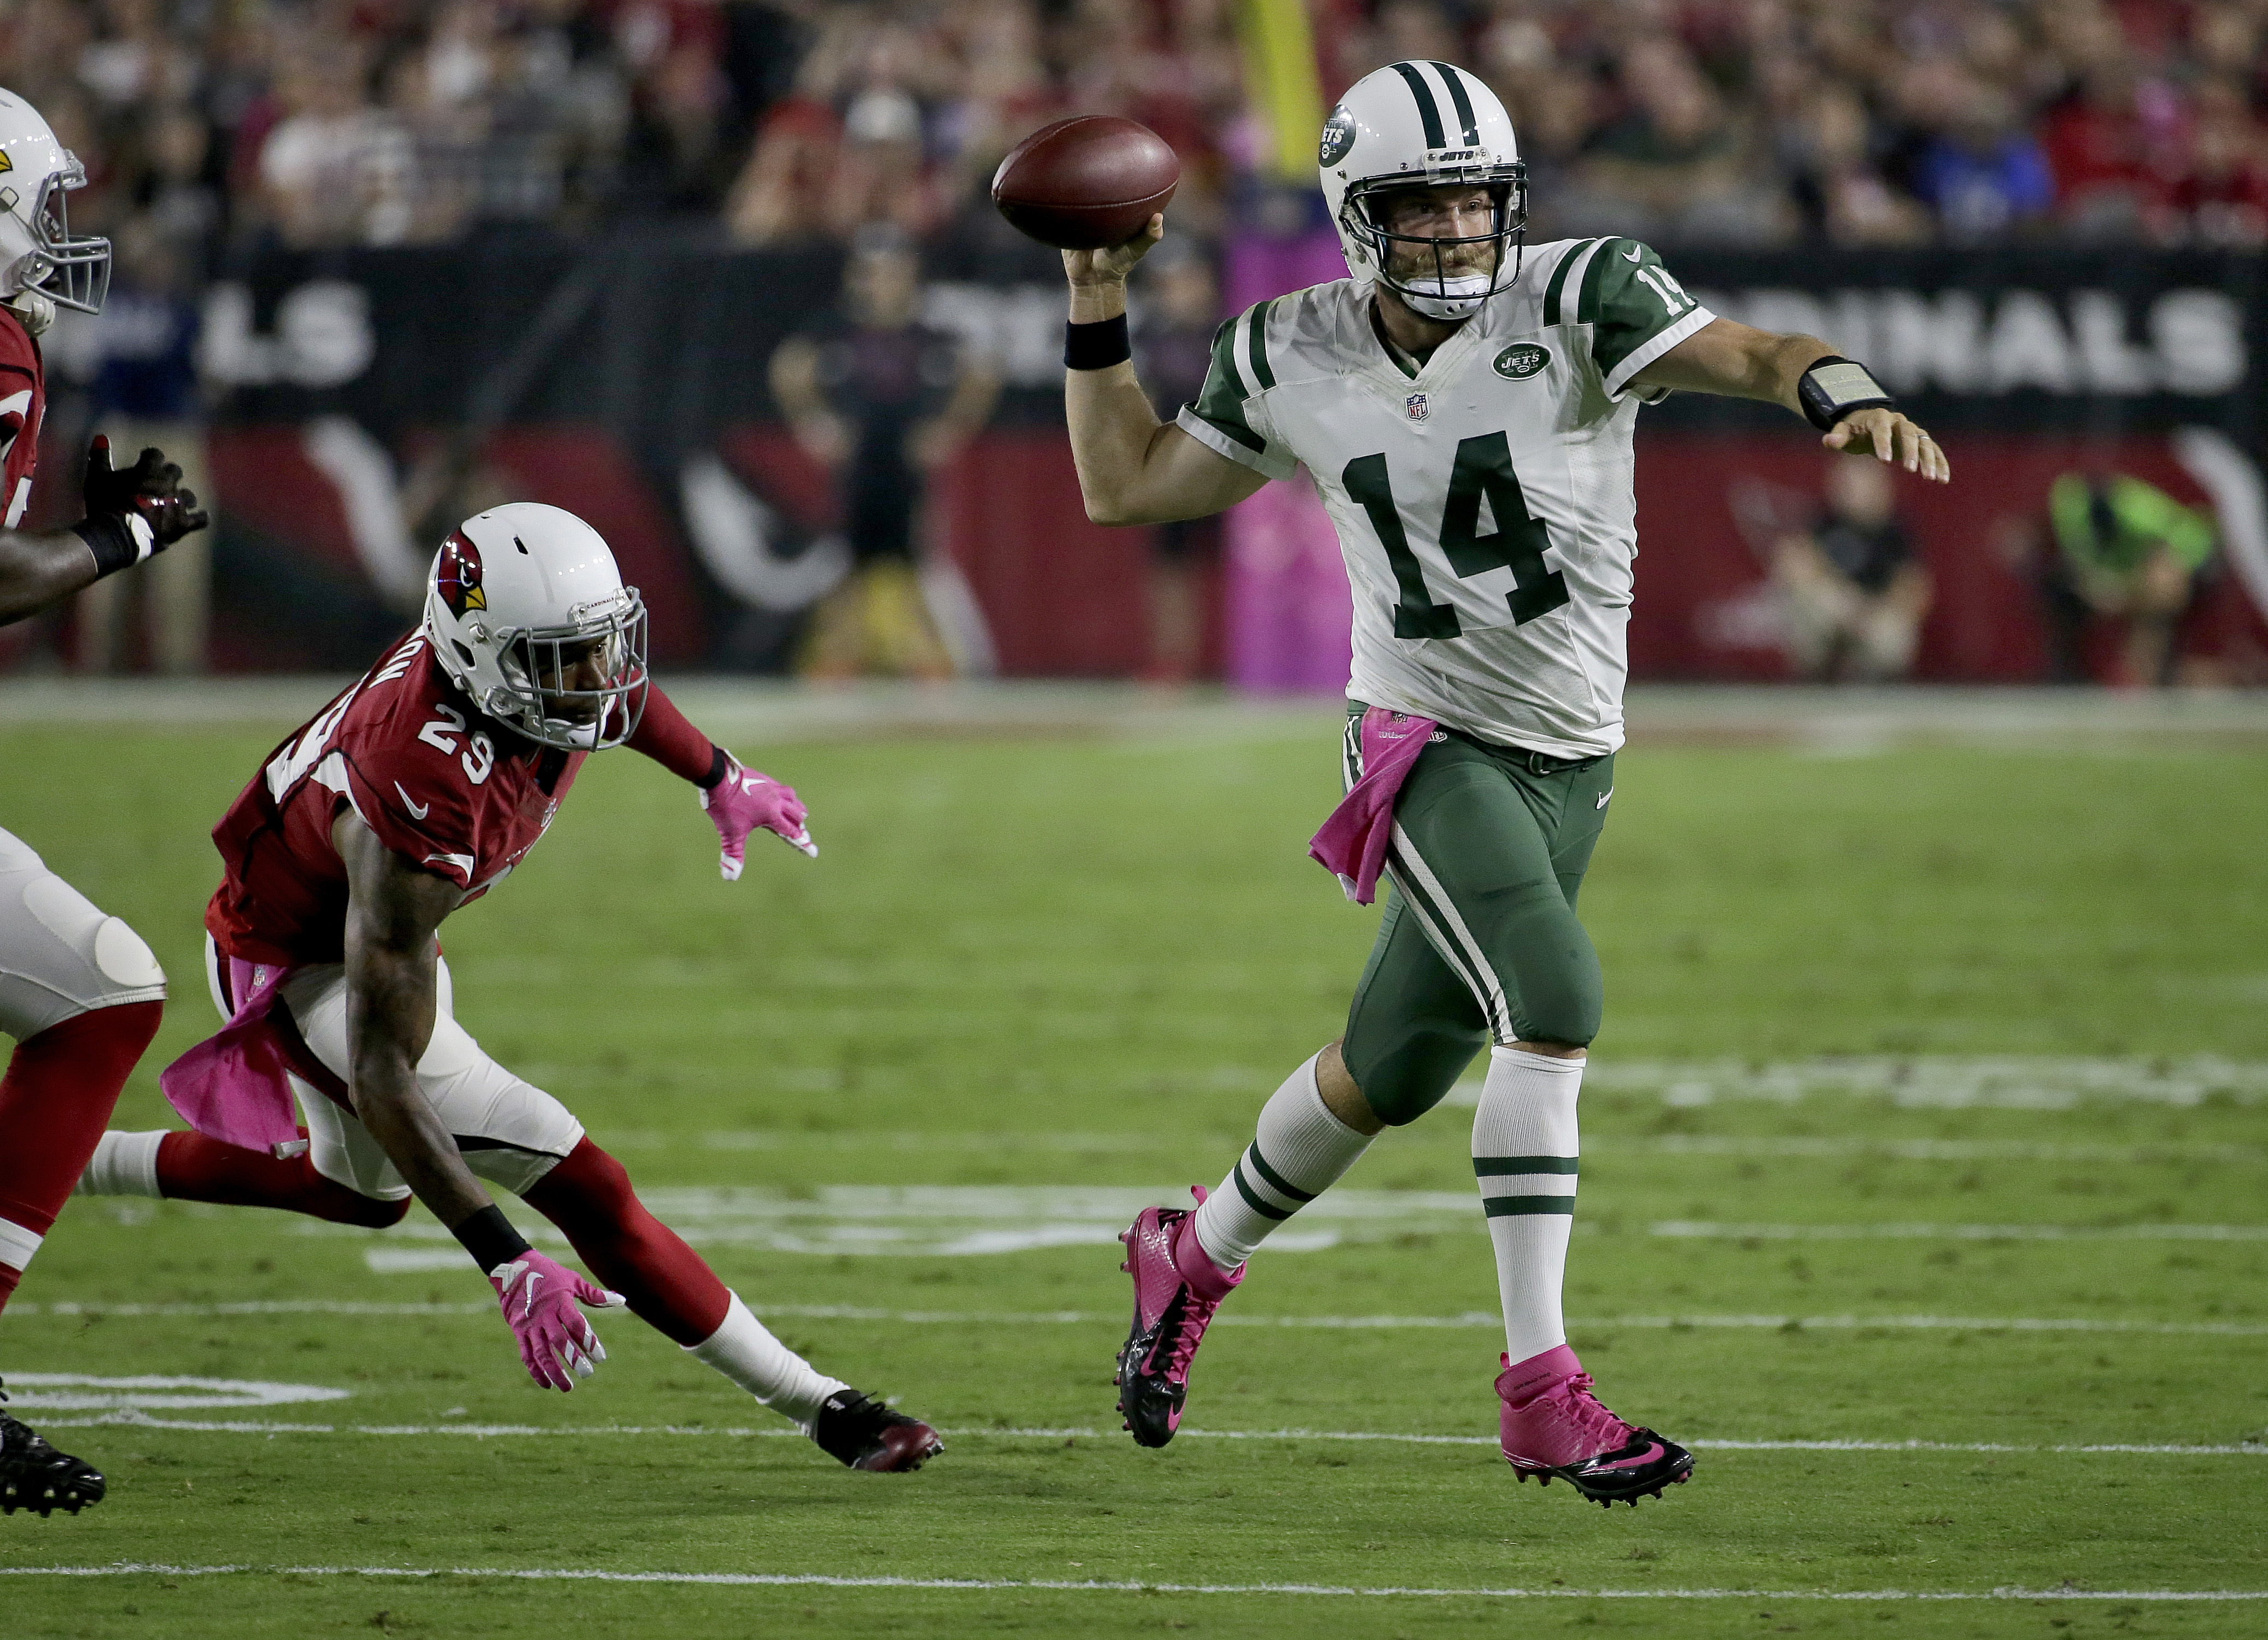 New York Jets quarterback Ryan Fitzpatrick (14) throws as Arizona Cardinals cornerback Tharold Simon (29) pursues during the first half of an NFL football game, Monday, Oct. 17, 2016, in Glendale, Ariz. (AP Photo/Rick Scuteri)